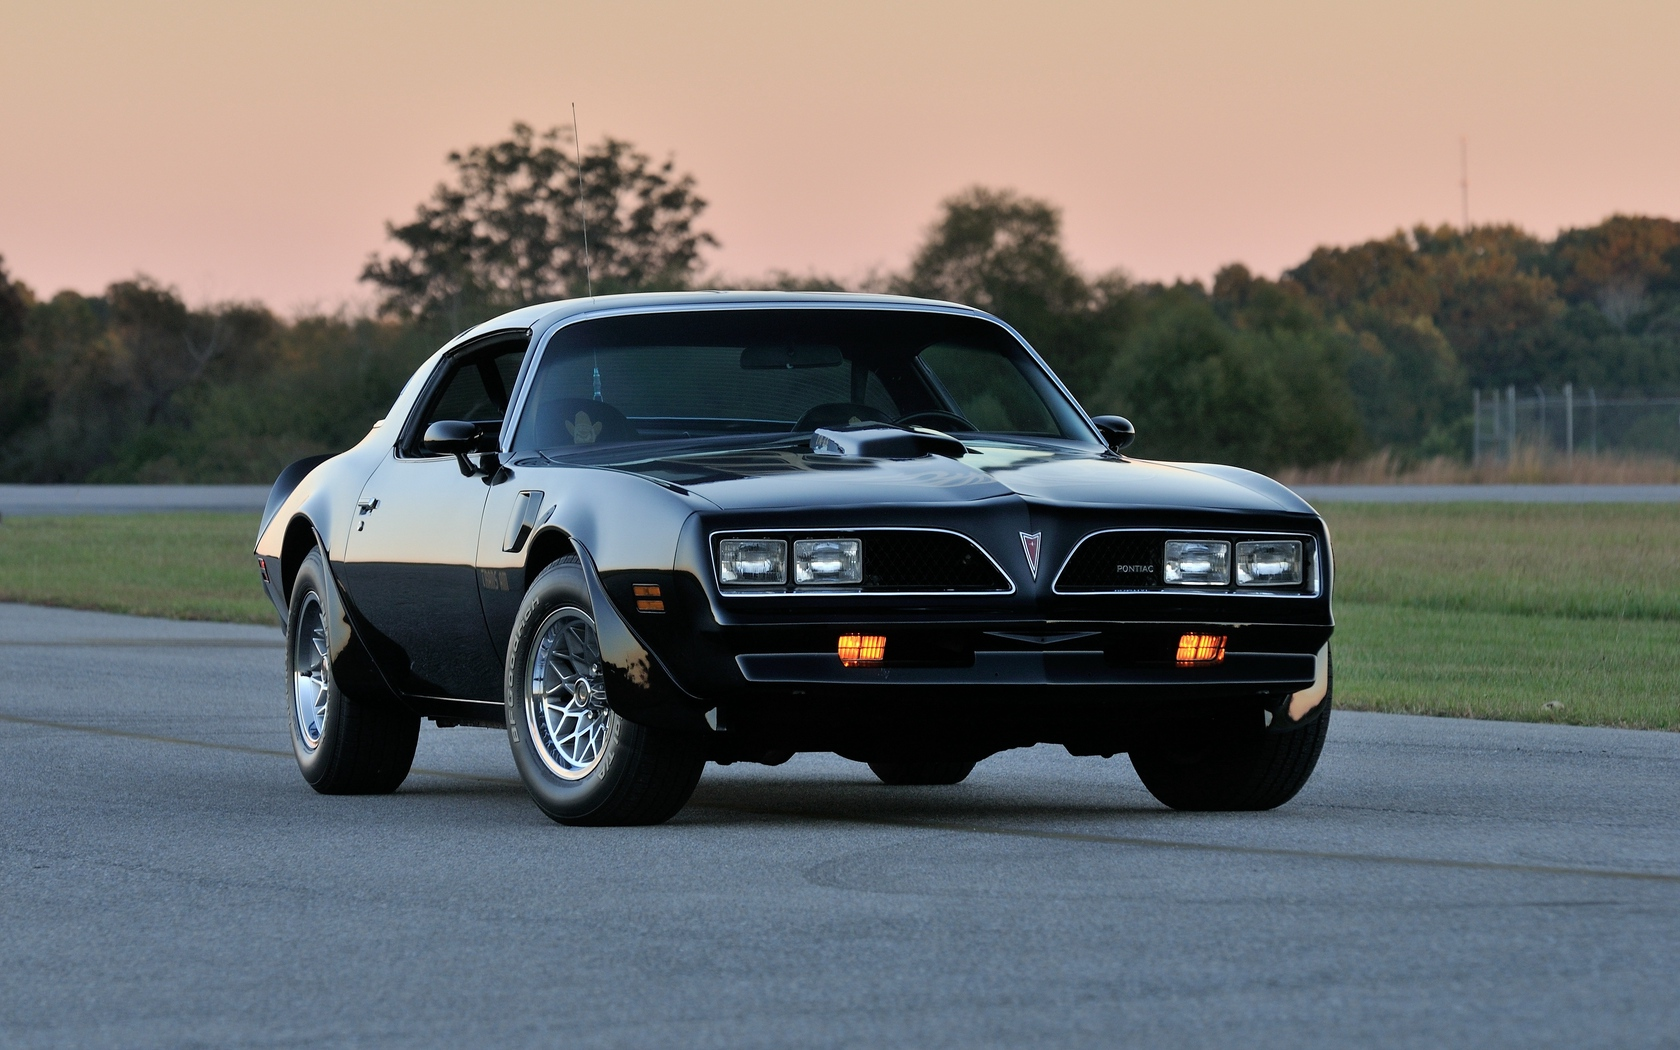 Download wallpaper 1680x1050 pontiac firebird trans am ws6 1680x1050